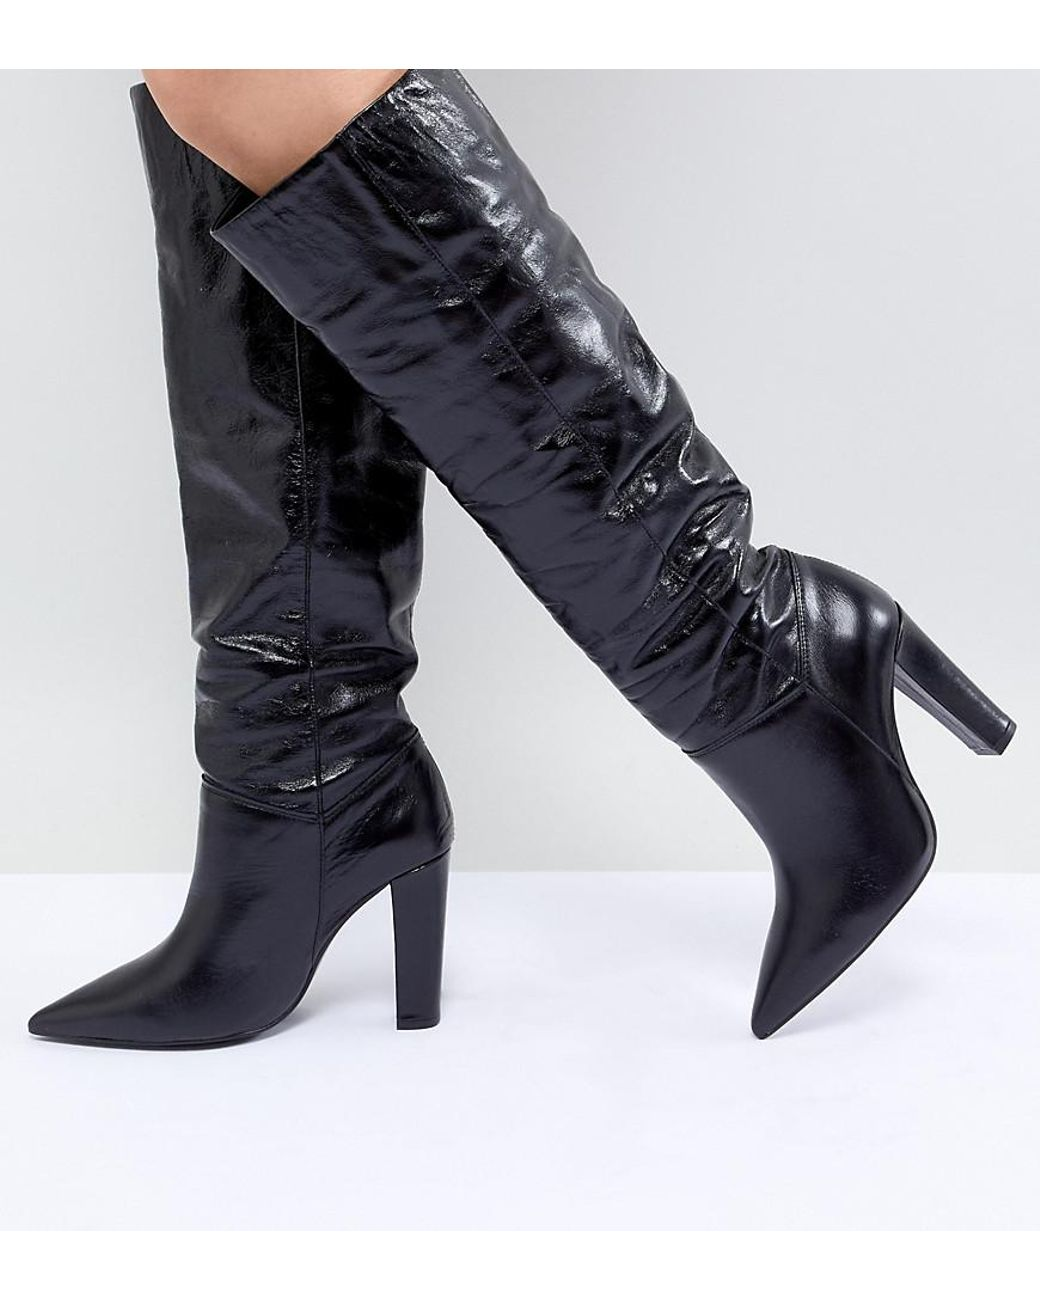 d3b1250c62f Mango Knee High Leather Boot in Black - Lyst